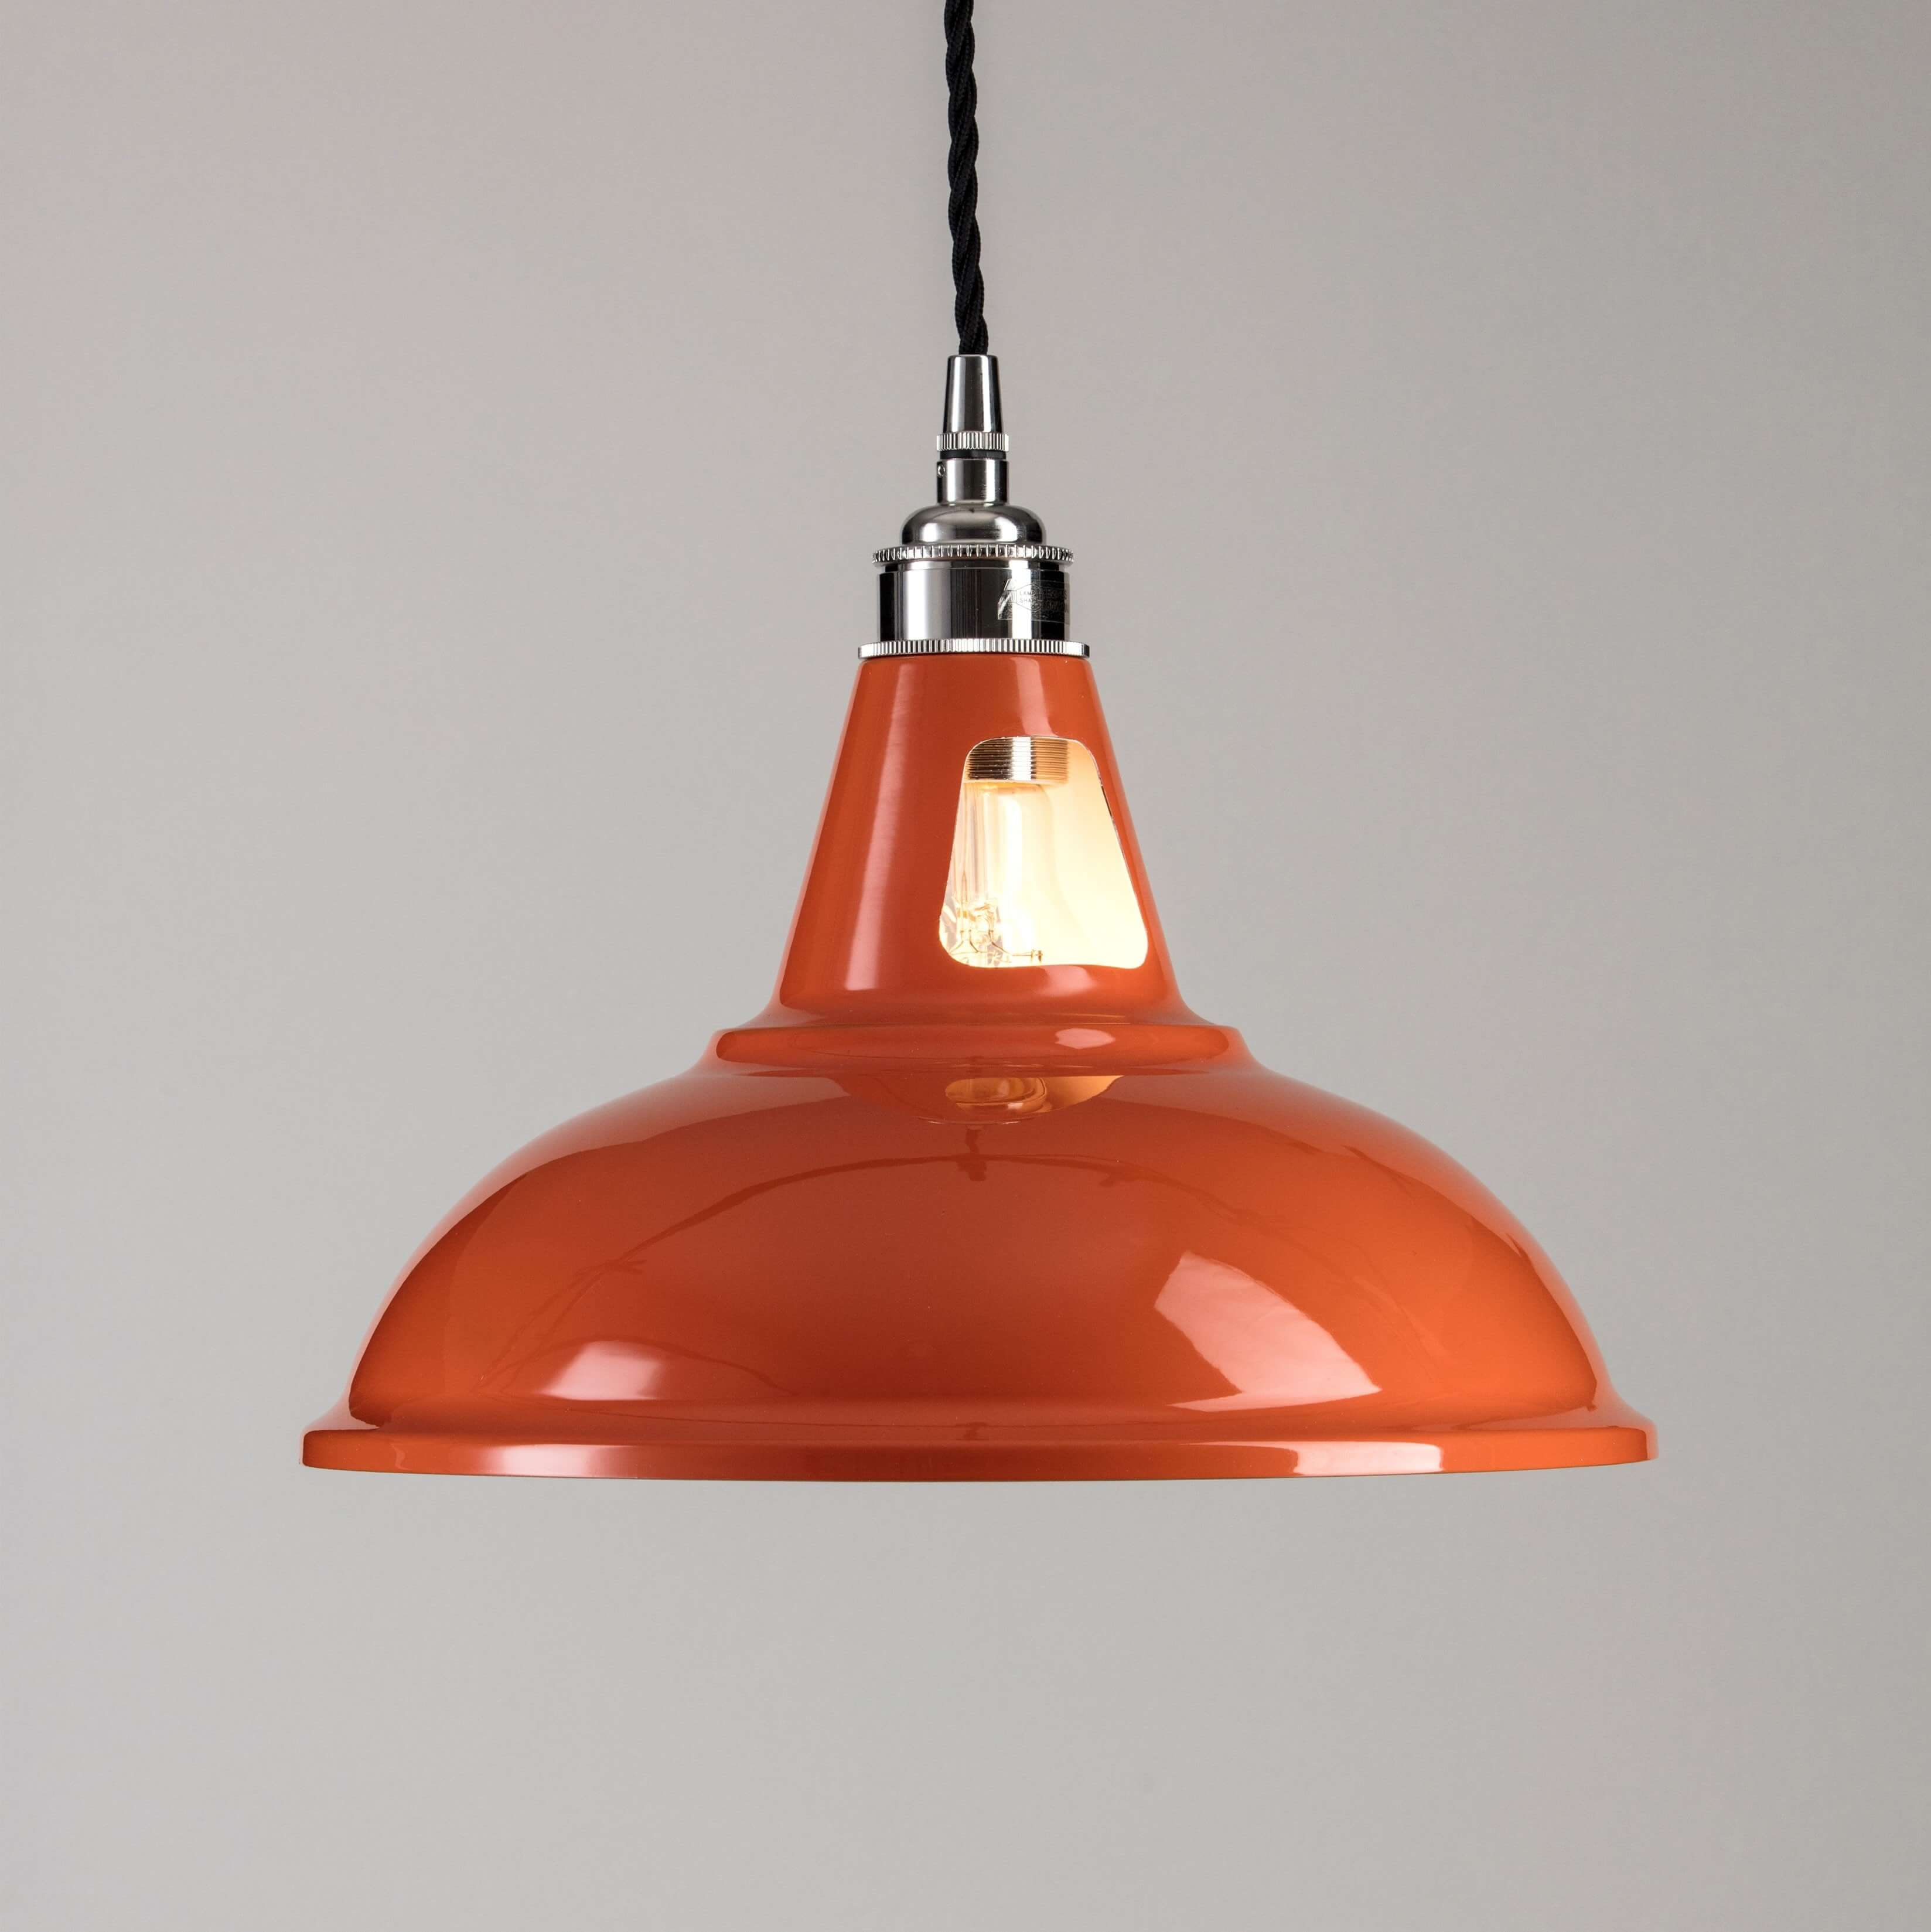 Factory pendant light orange